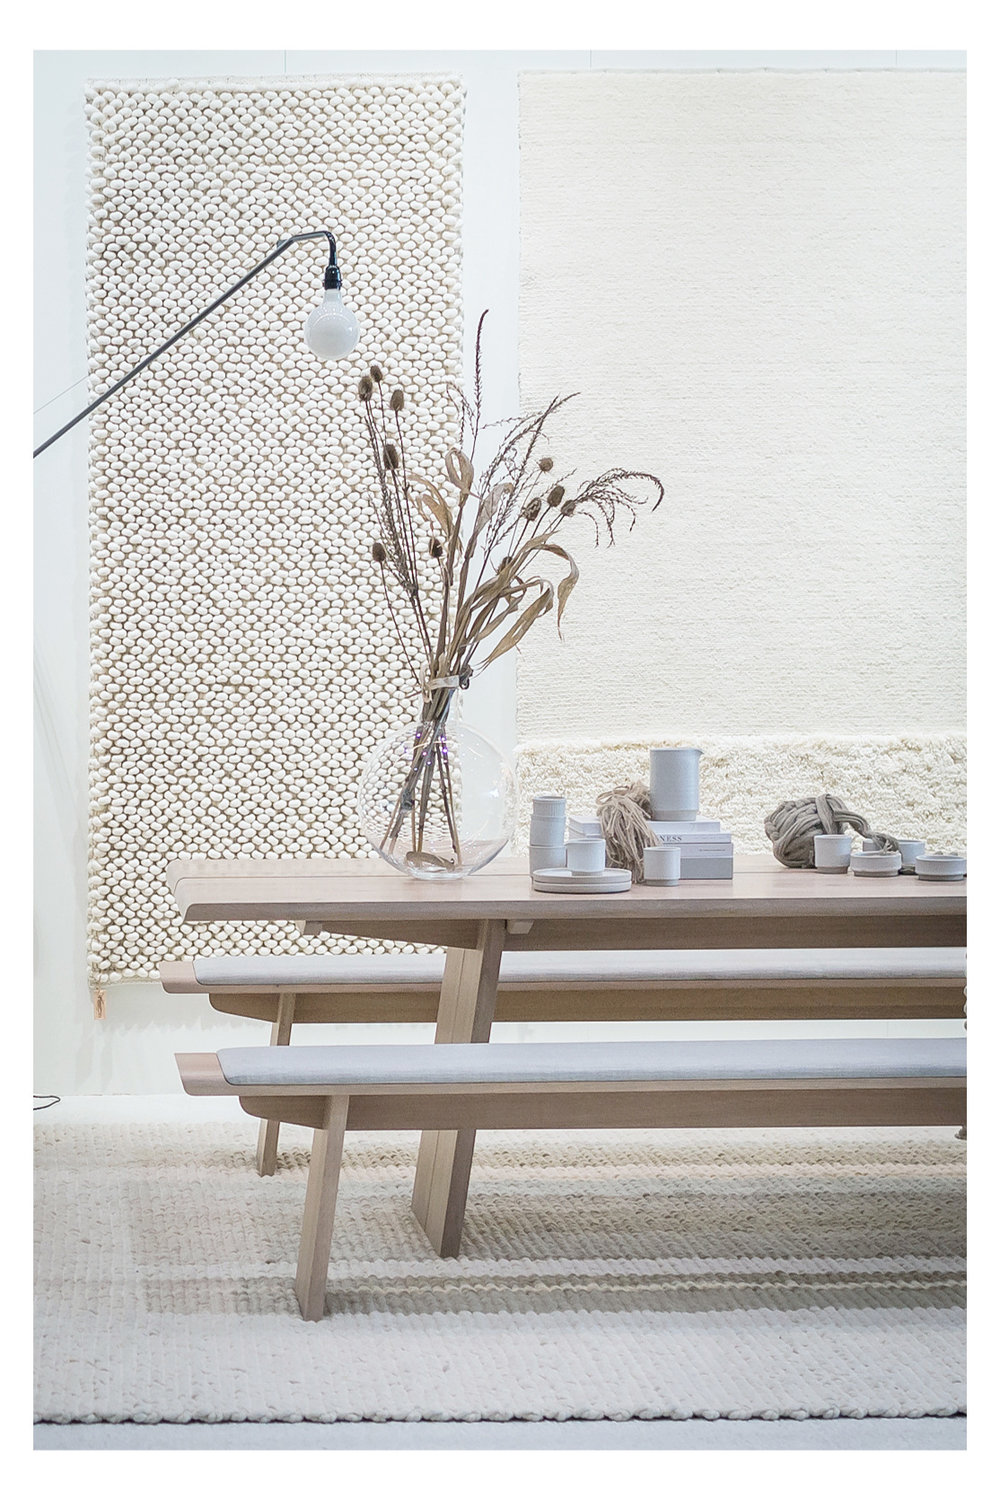 TISCA rugs on floors and walls at Domotex 2018